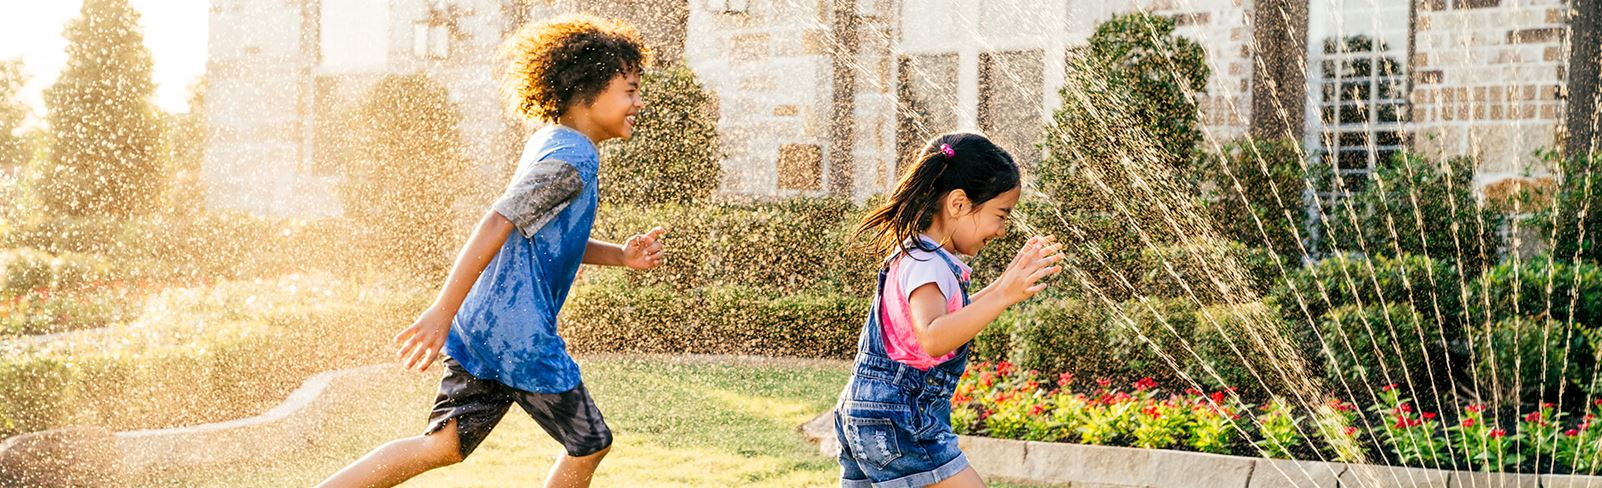 Kids playing in new home in Katy, TX at Elyson master-planned community